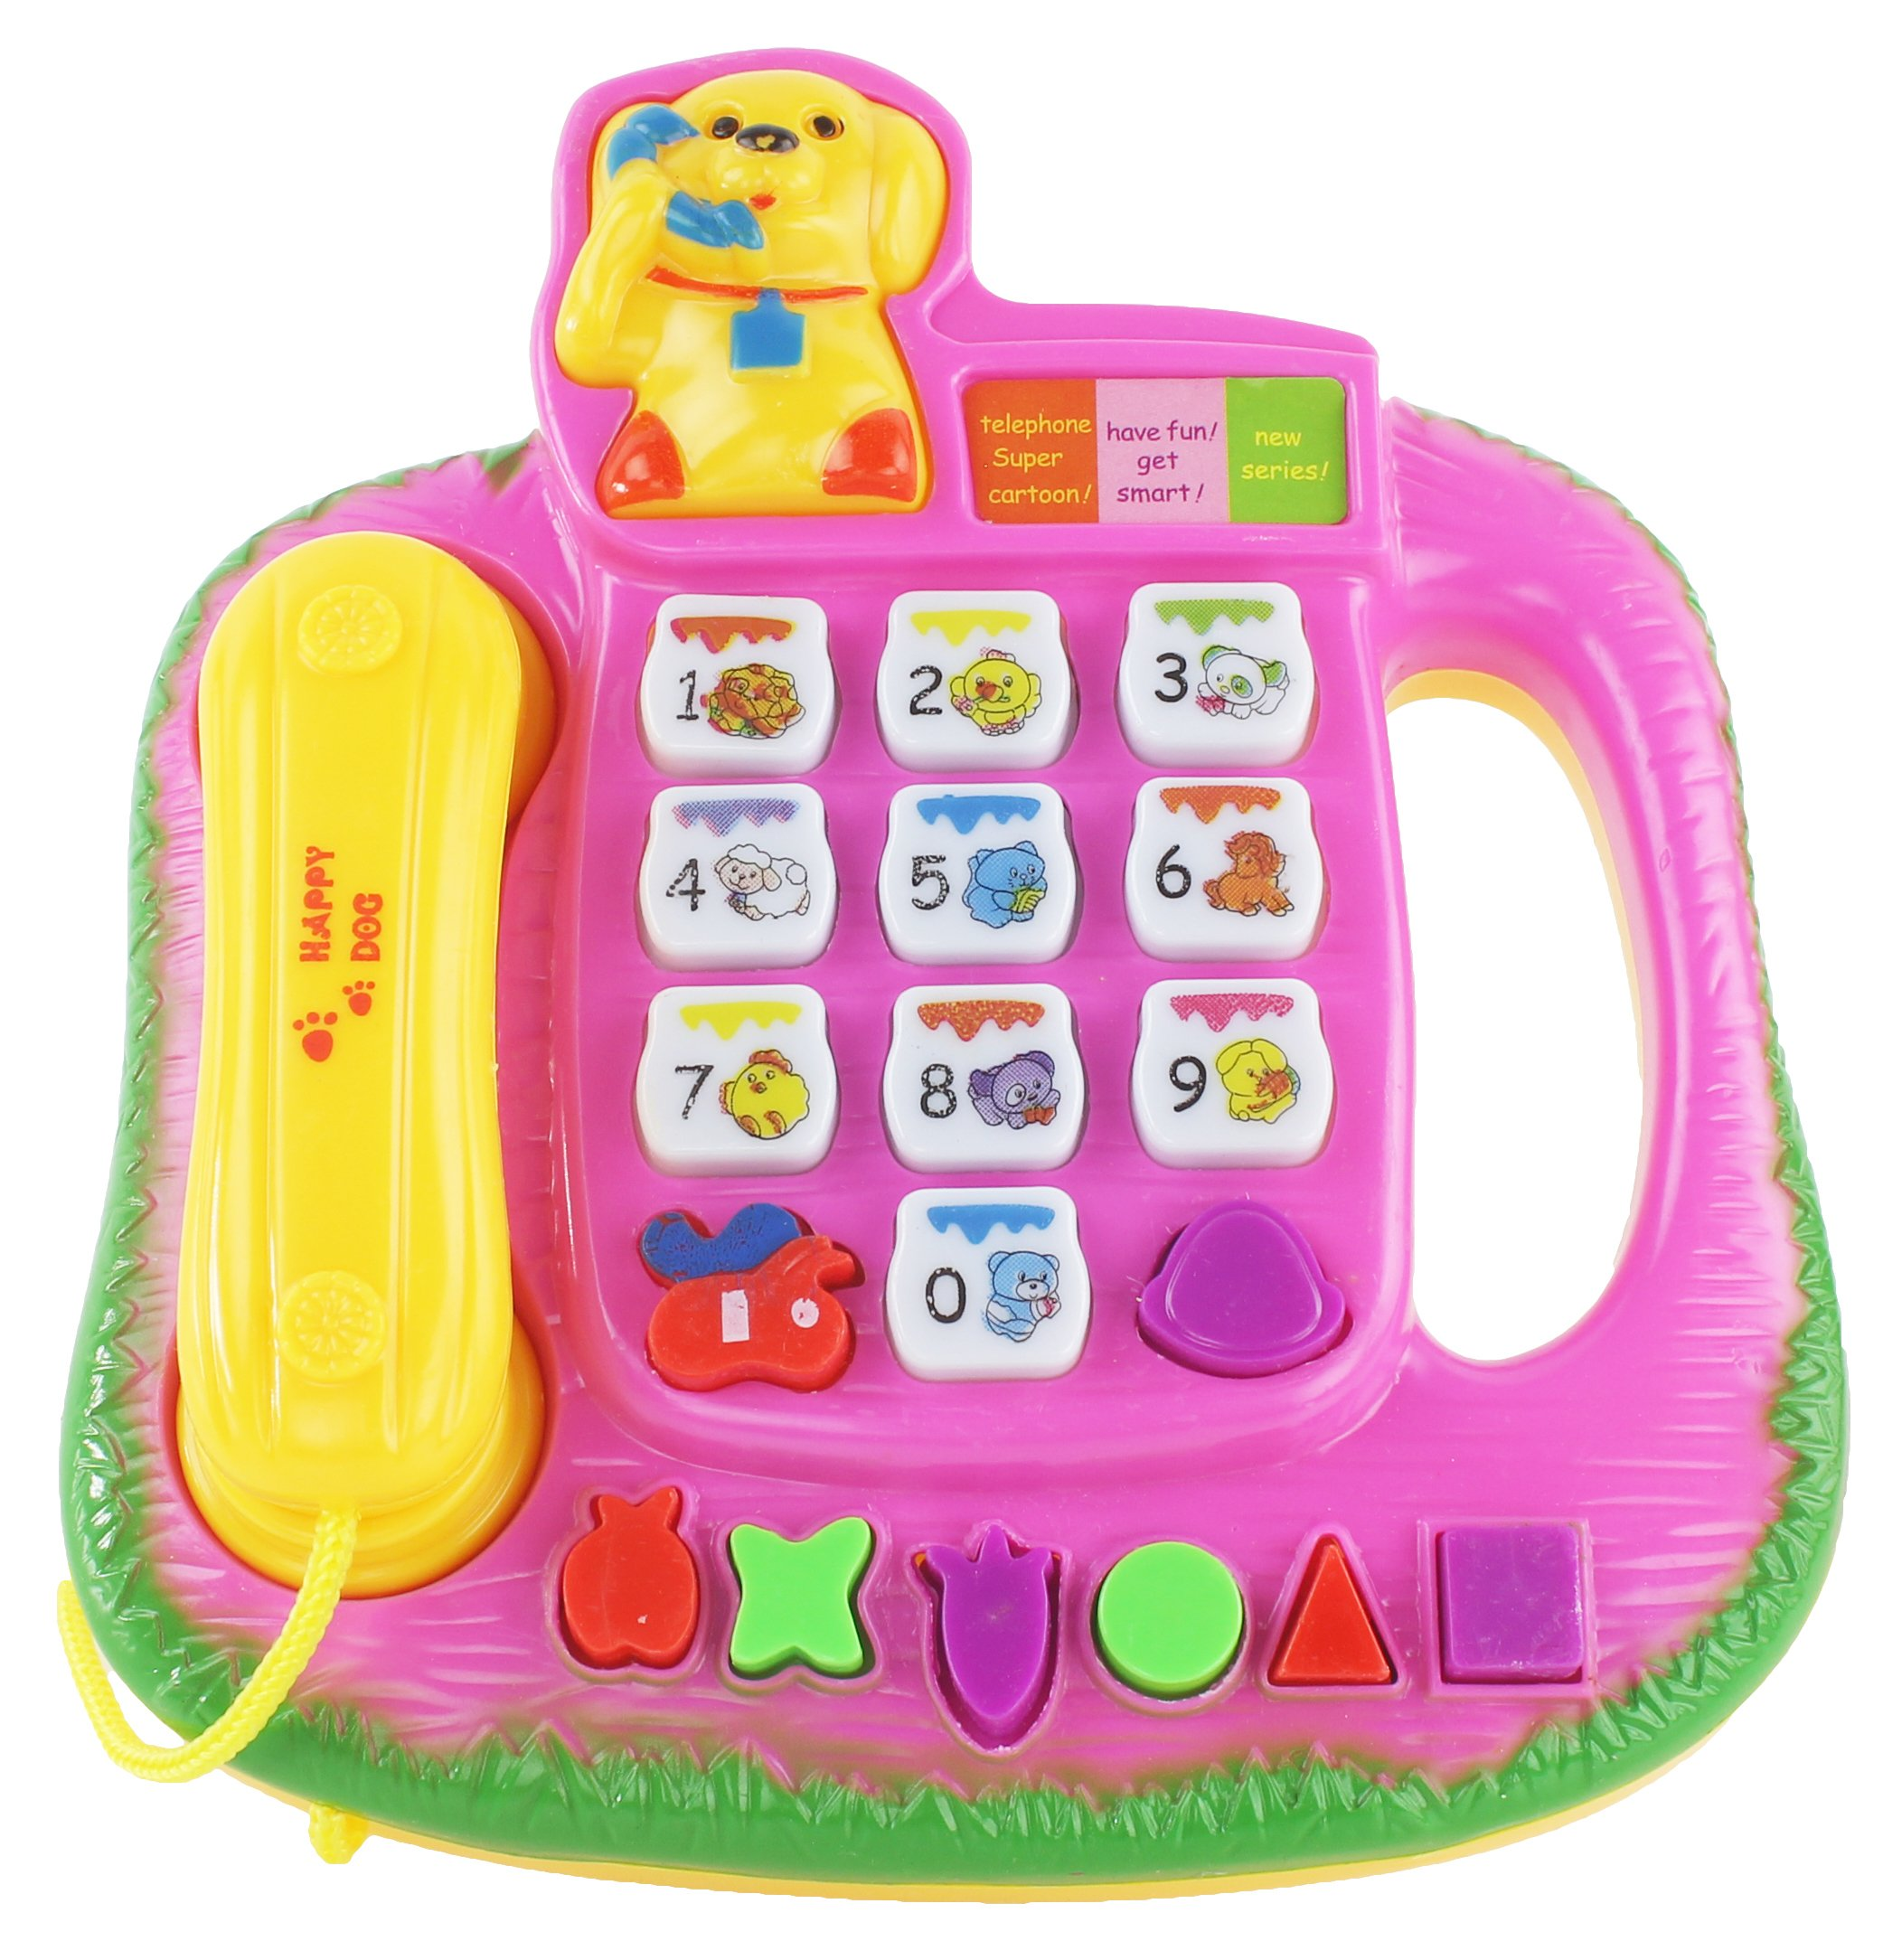 AJ Toys & Games Dog Themed Battery Operated Telephone, Phone for Kids, Children's Pretend Play Phonephone Colorful Assorted Colors! by AJ Toys & Games